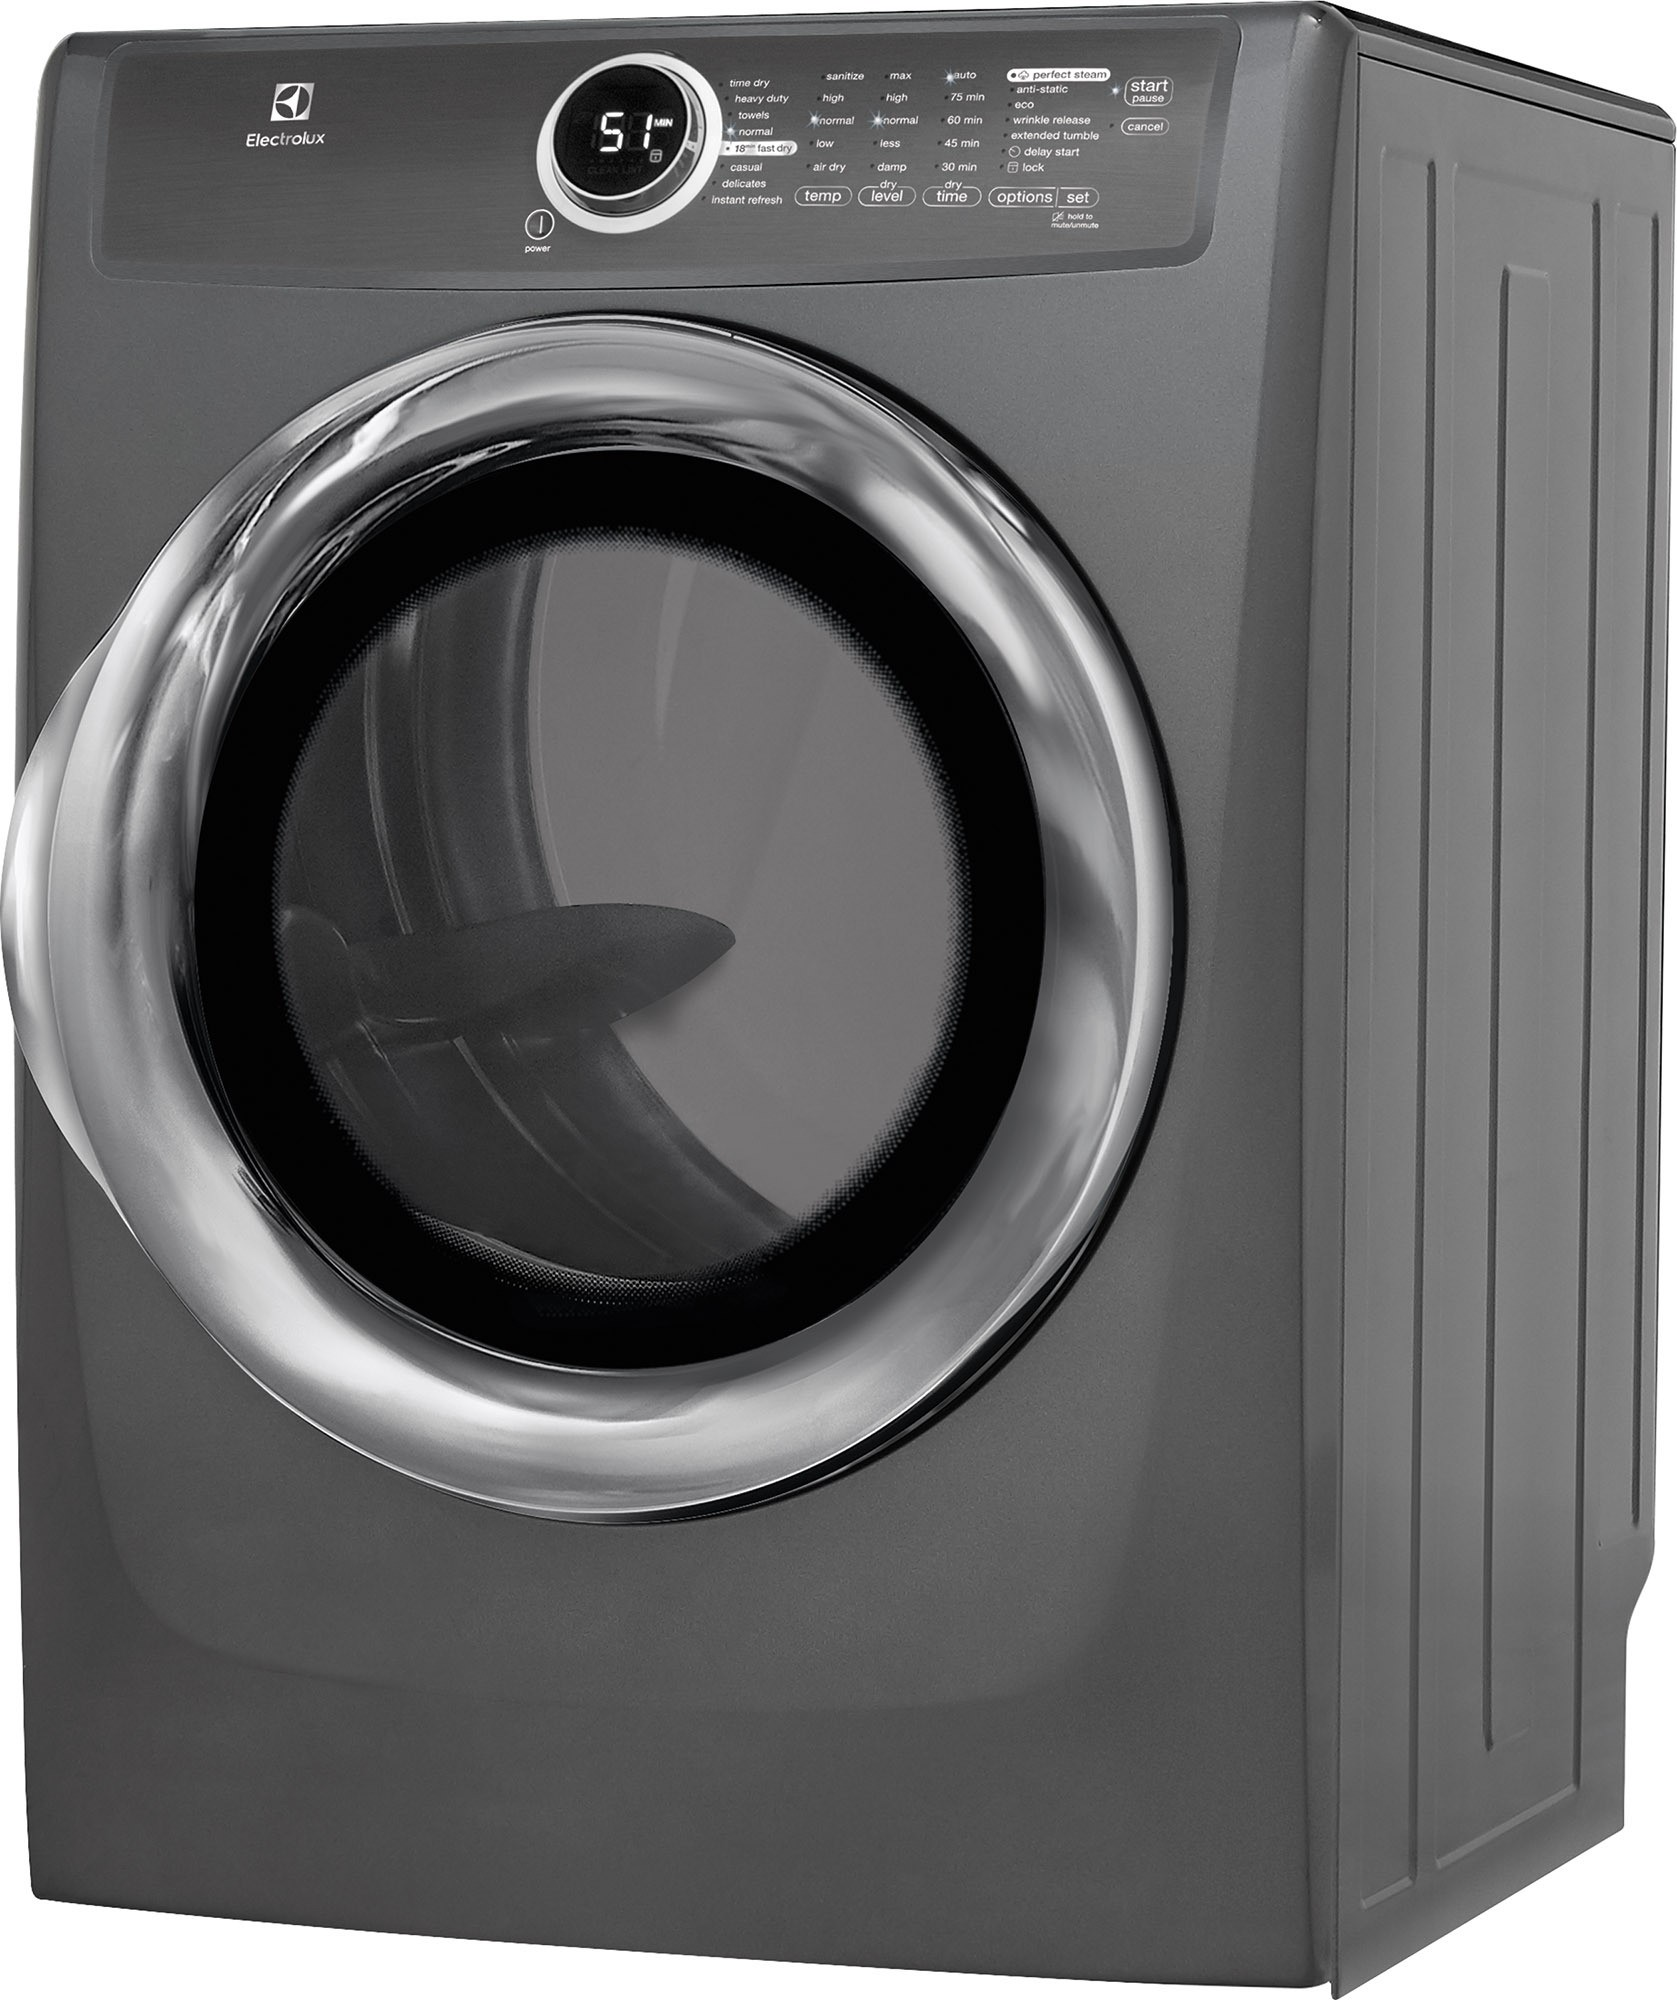 Electrolux Efme517stt Perfect Steam Electric Dryer